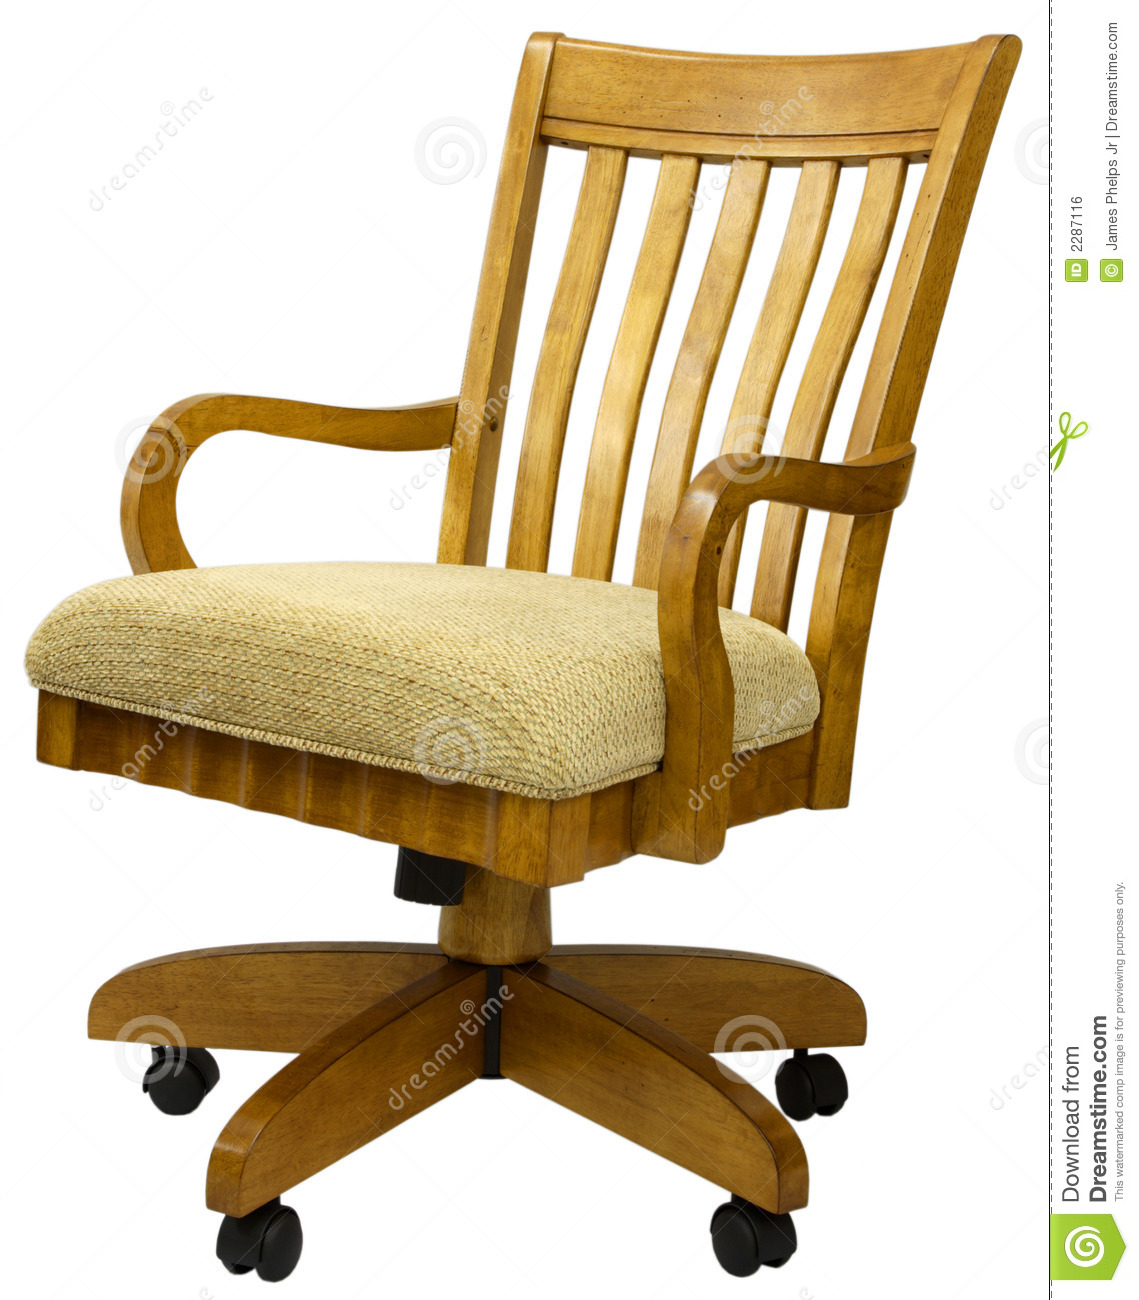 Oak Office Chair  sc 1 st  Dreamstime.com & Oak Office Chair stock photo. Image of chair design fabric - 2287116